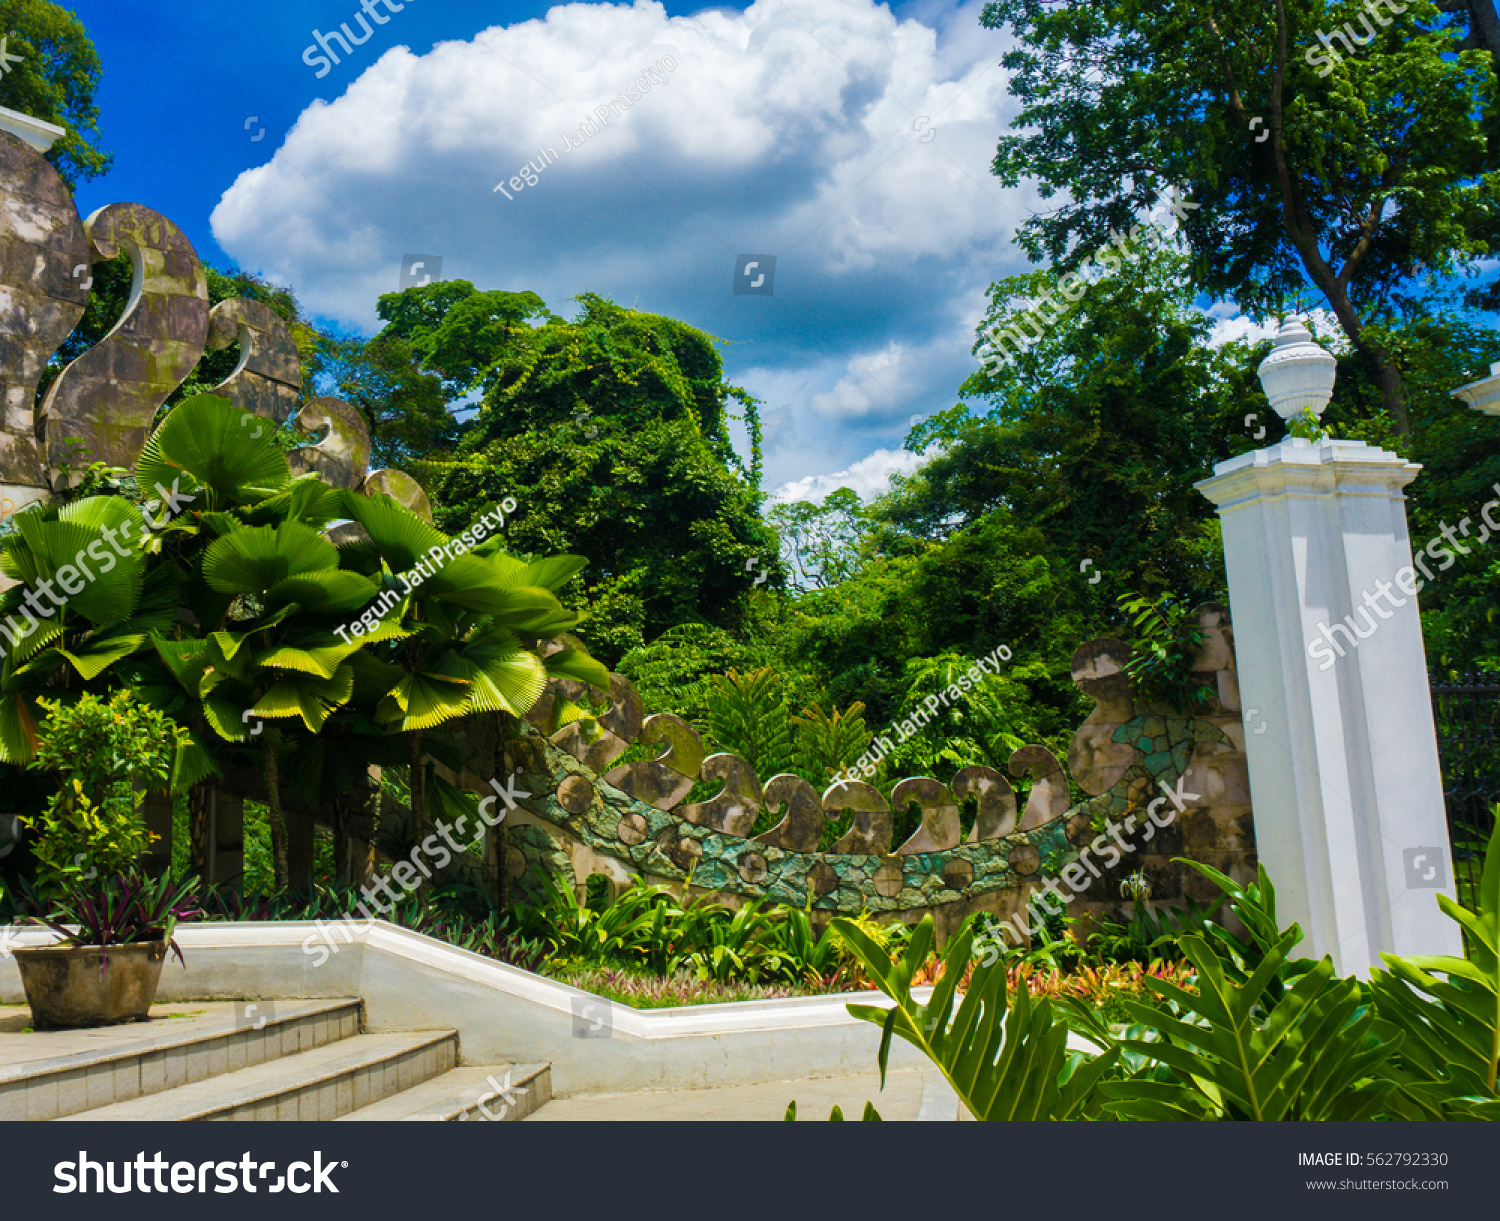 A Beautiful Garden Landscape With Stairs And White Pillar Photo Taken In  Kebun Raya Bogor Indonesia